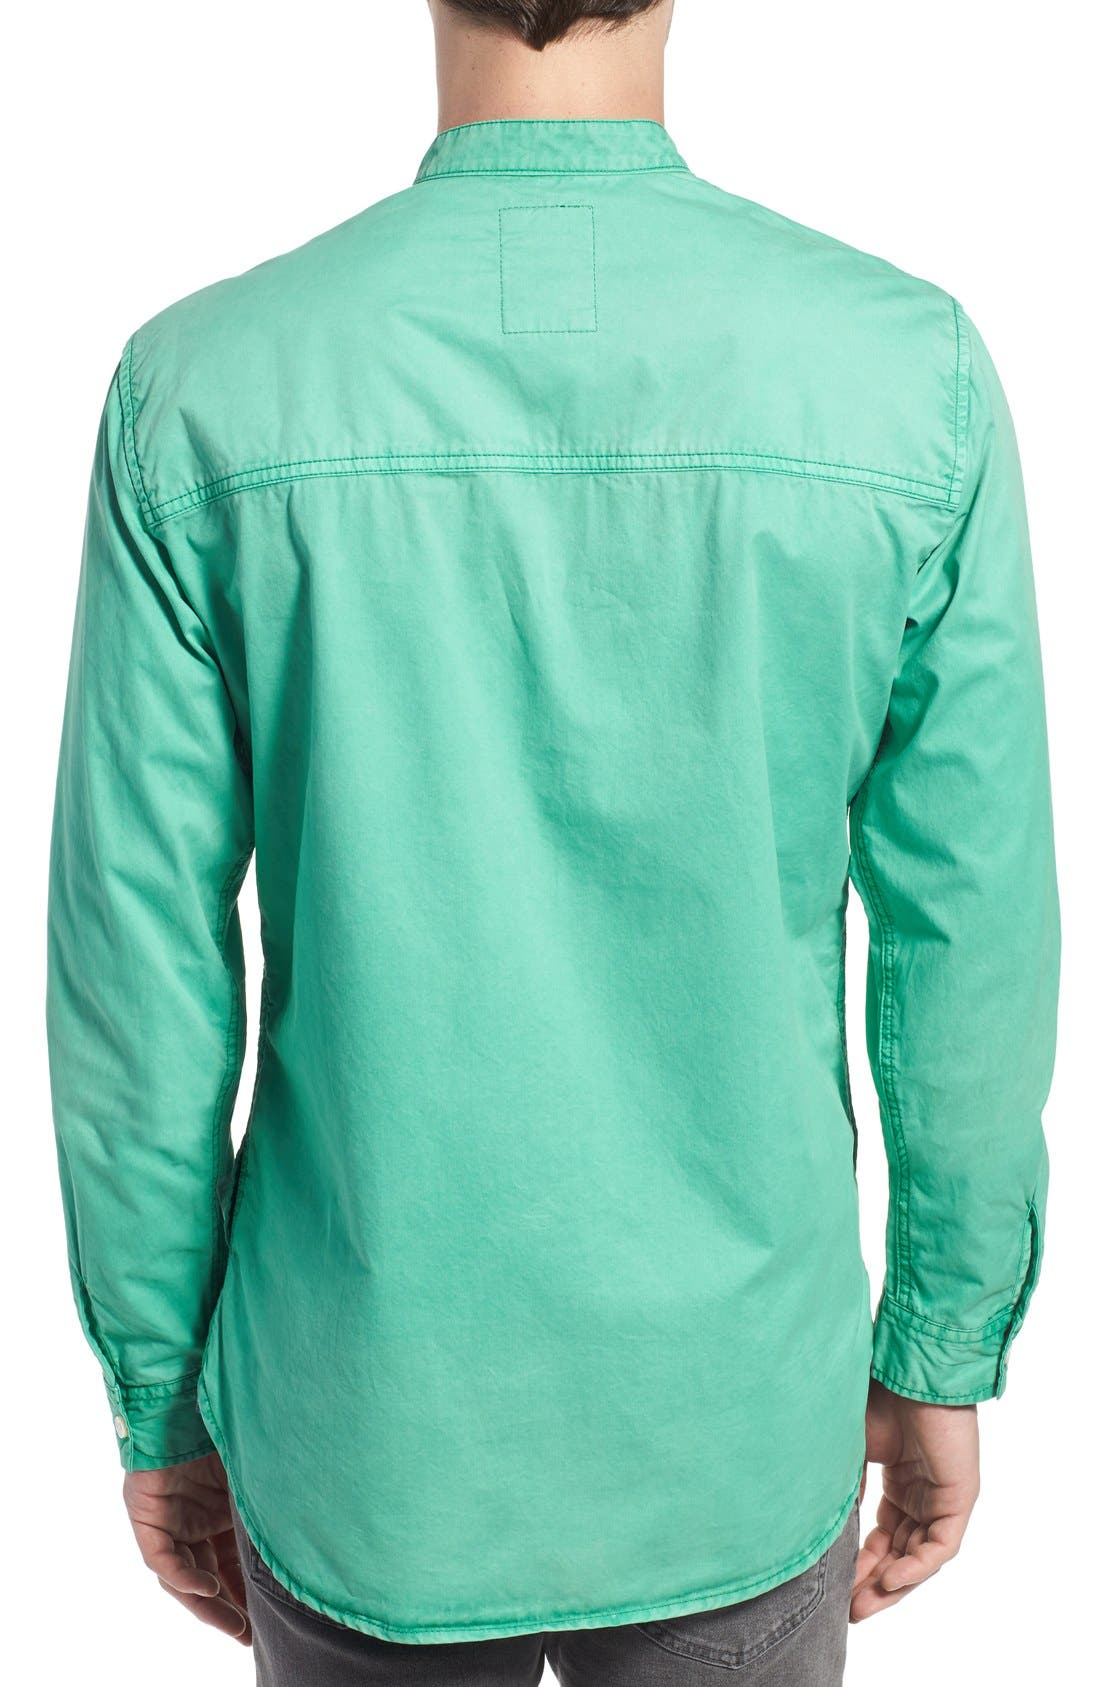 'Cotinga' Extra Trim Fit Band Collar Woven Shirt,                             Alternate thumbnail 3, color,                             Green